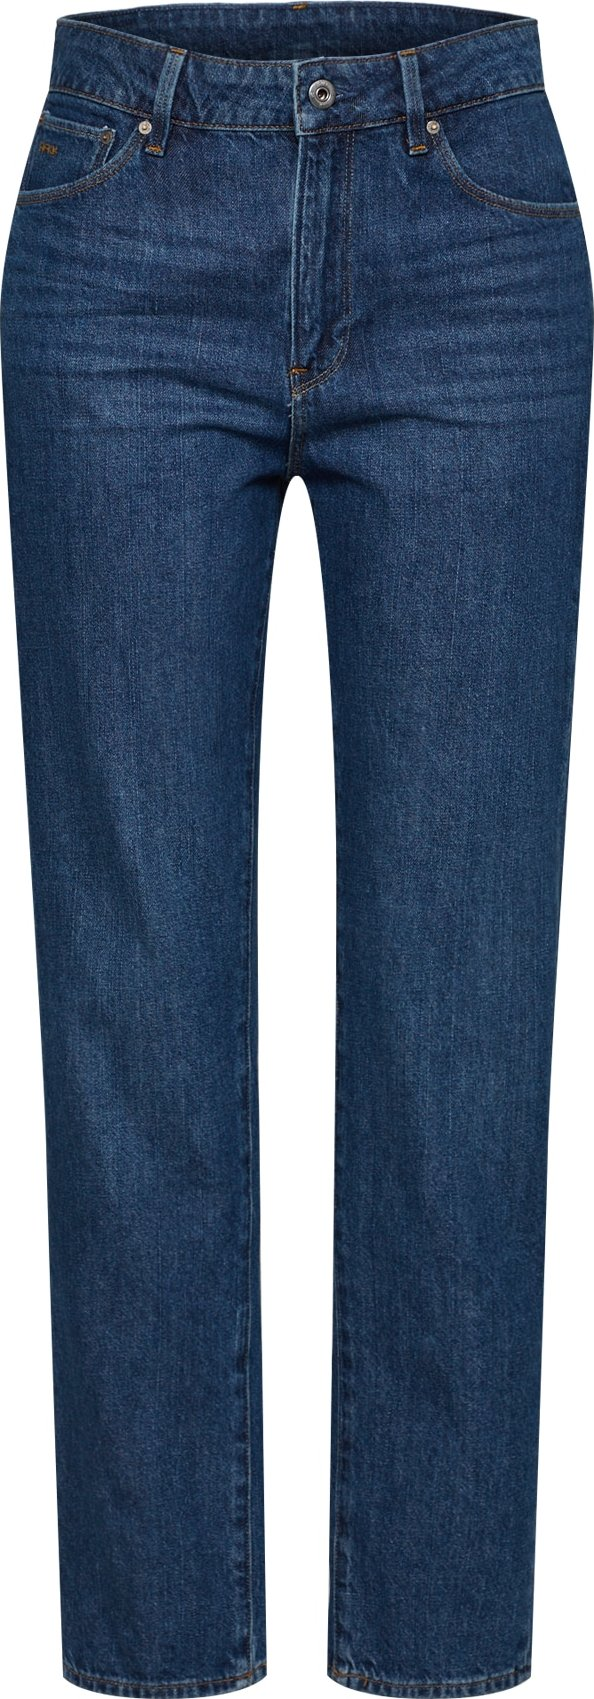 G-Star RAW Džíny 3301 High Straight 90s Ankle Wmn modrá G-Star Raw